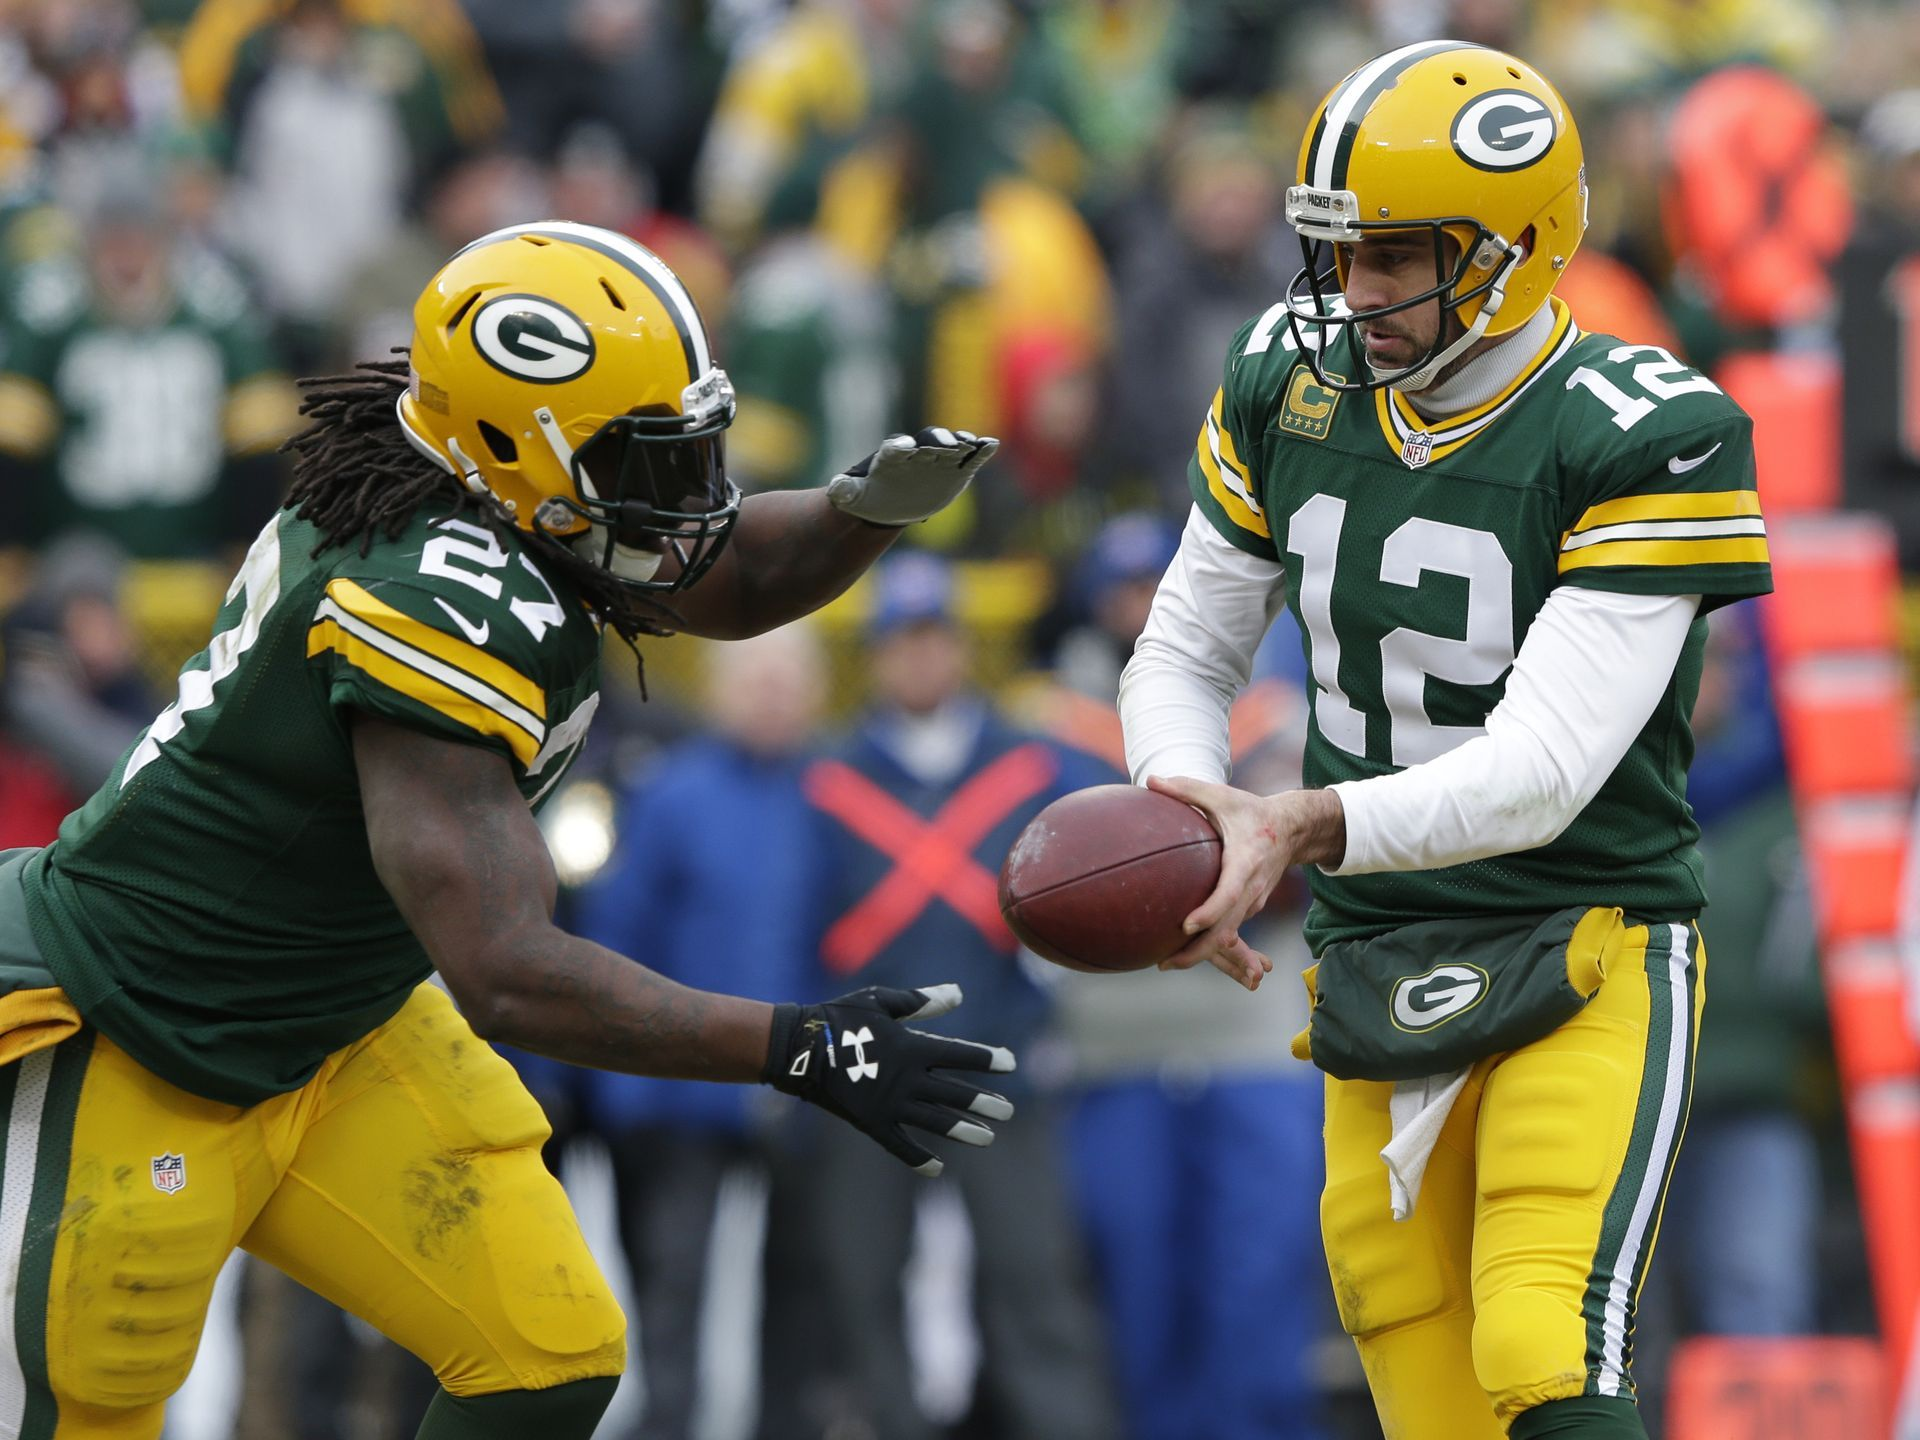 Nfc Divisional Playoff Packers 26 Cowboys 21 Green Bay Packers Packers Nfc